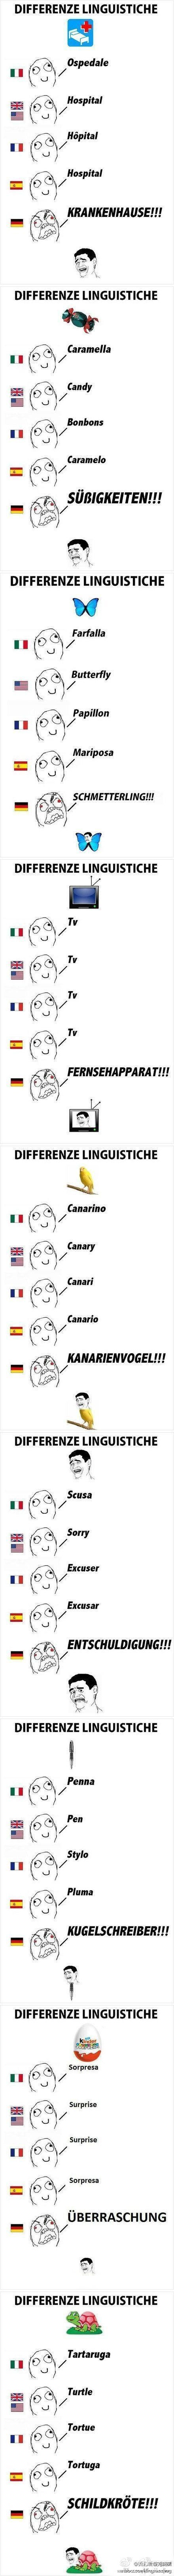 German is awesome!: